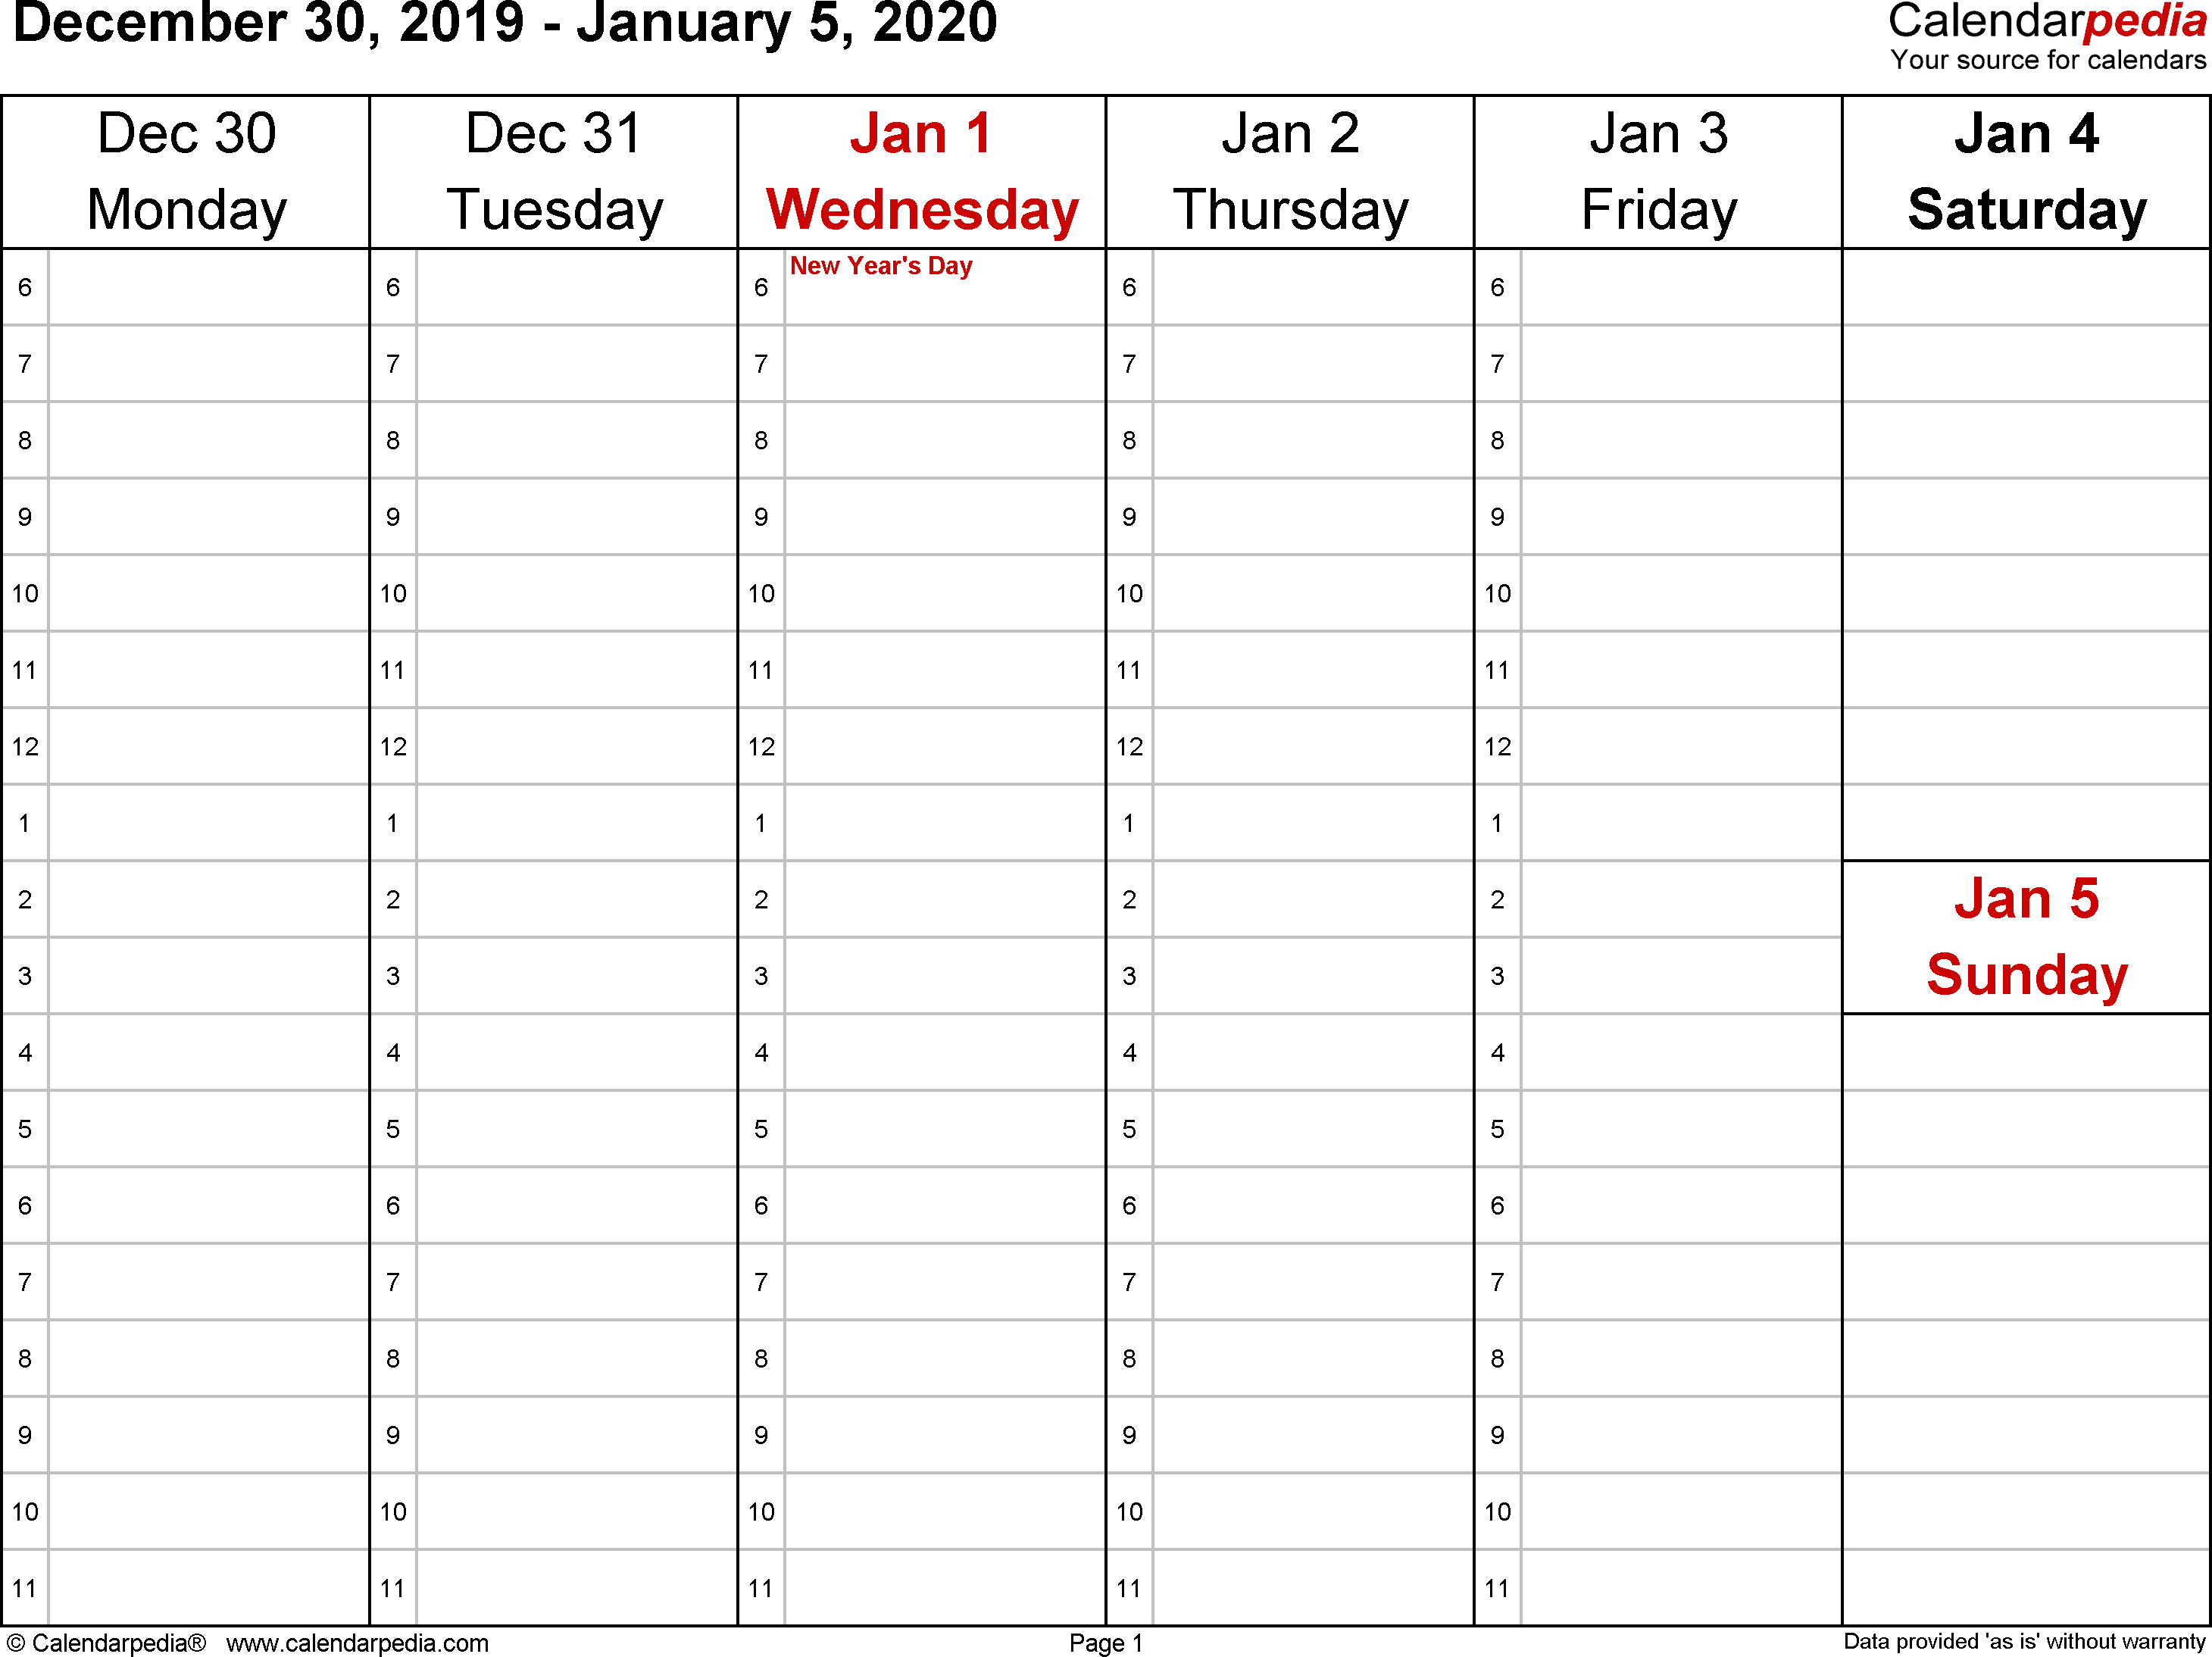 Weekly Calendar 2020 For Word - 12 Free Printable Templates regarding 11 X 8.5 Calendar Pages 2020 Free